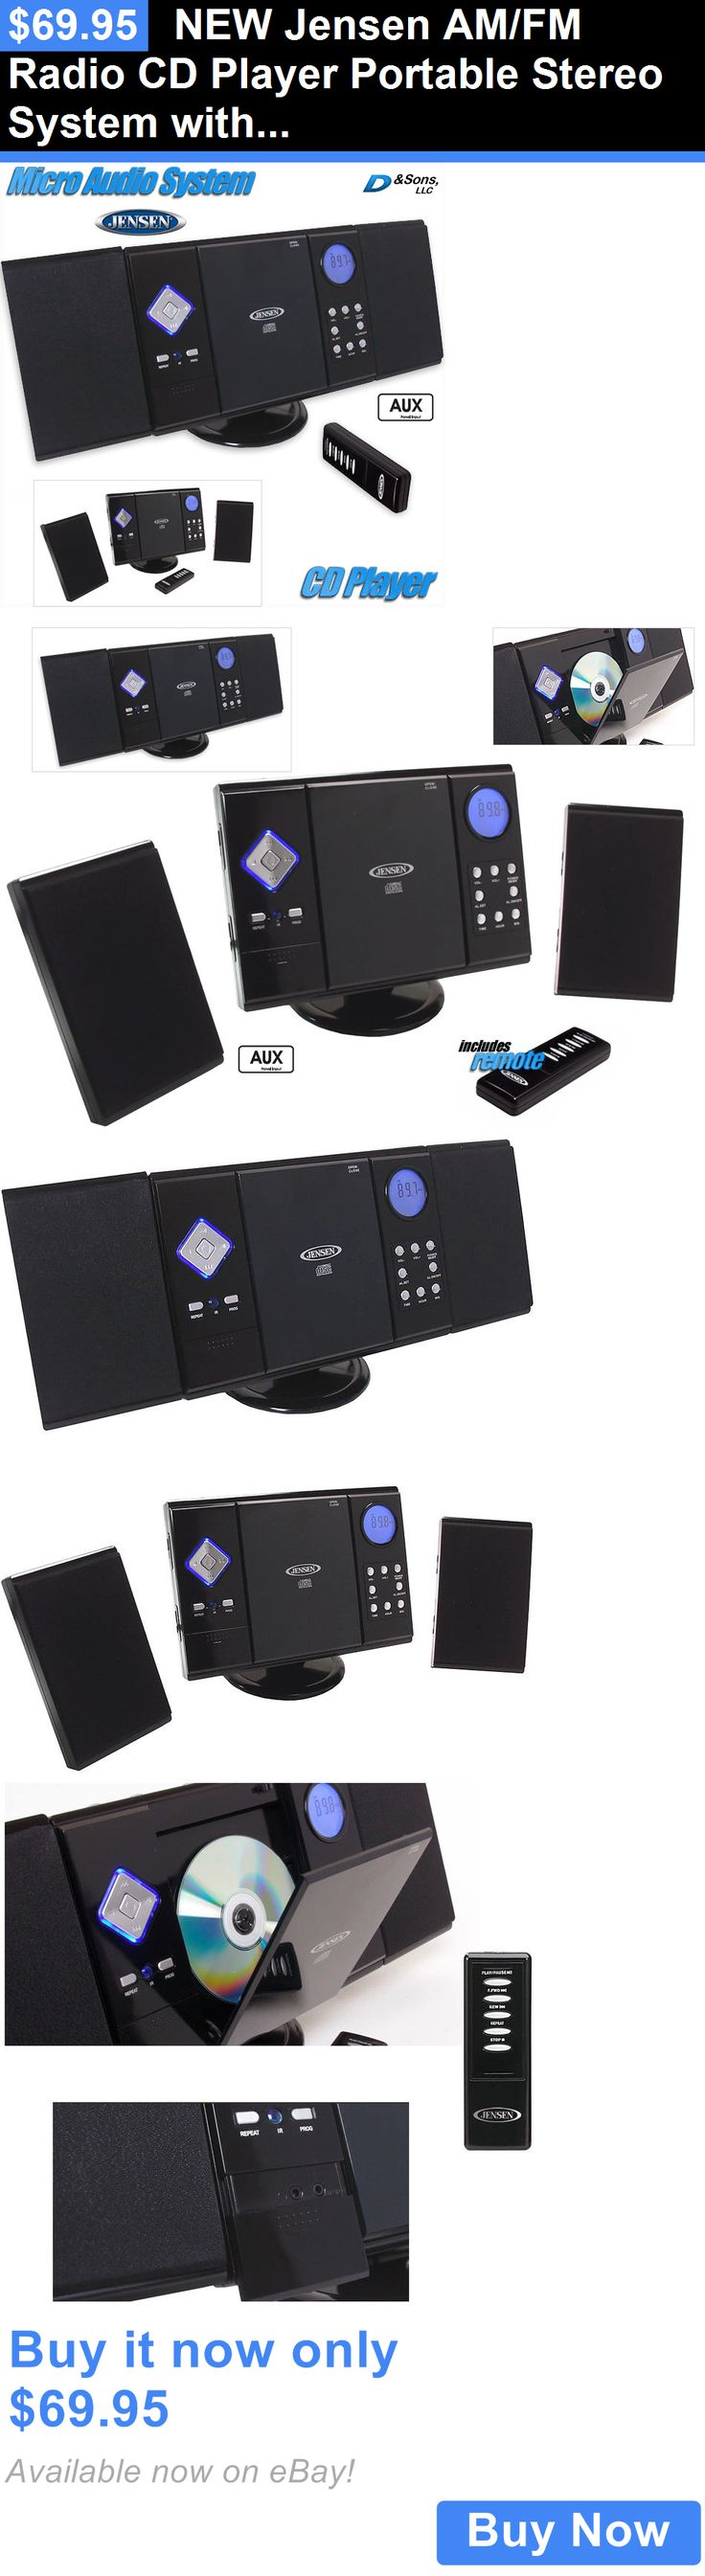 Home Audio: New Jensen Am/Fm Radio Cd Player Portable Stereo System With Aux-Input BUY IT NOW ONLY: $69.95